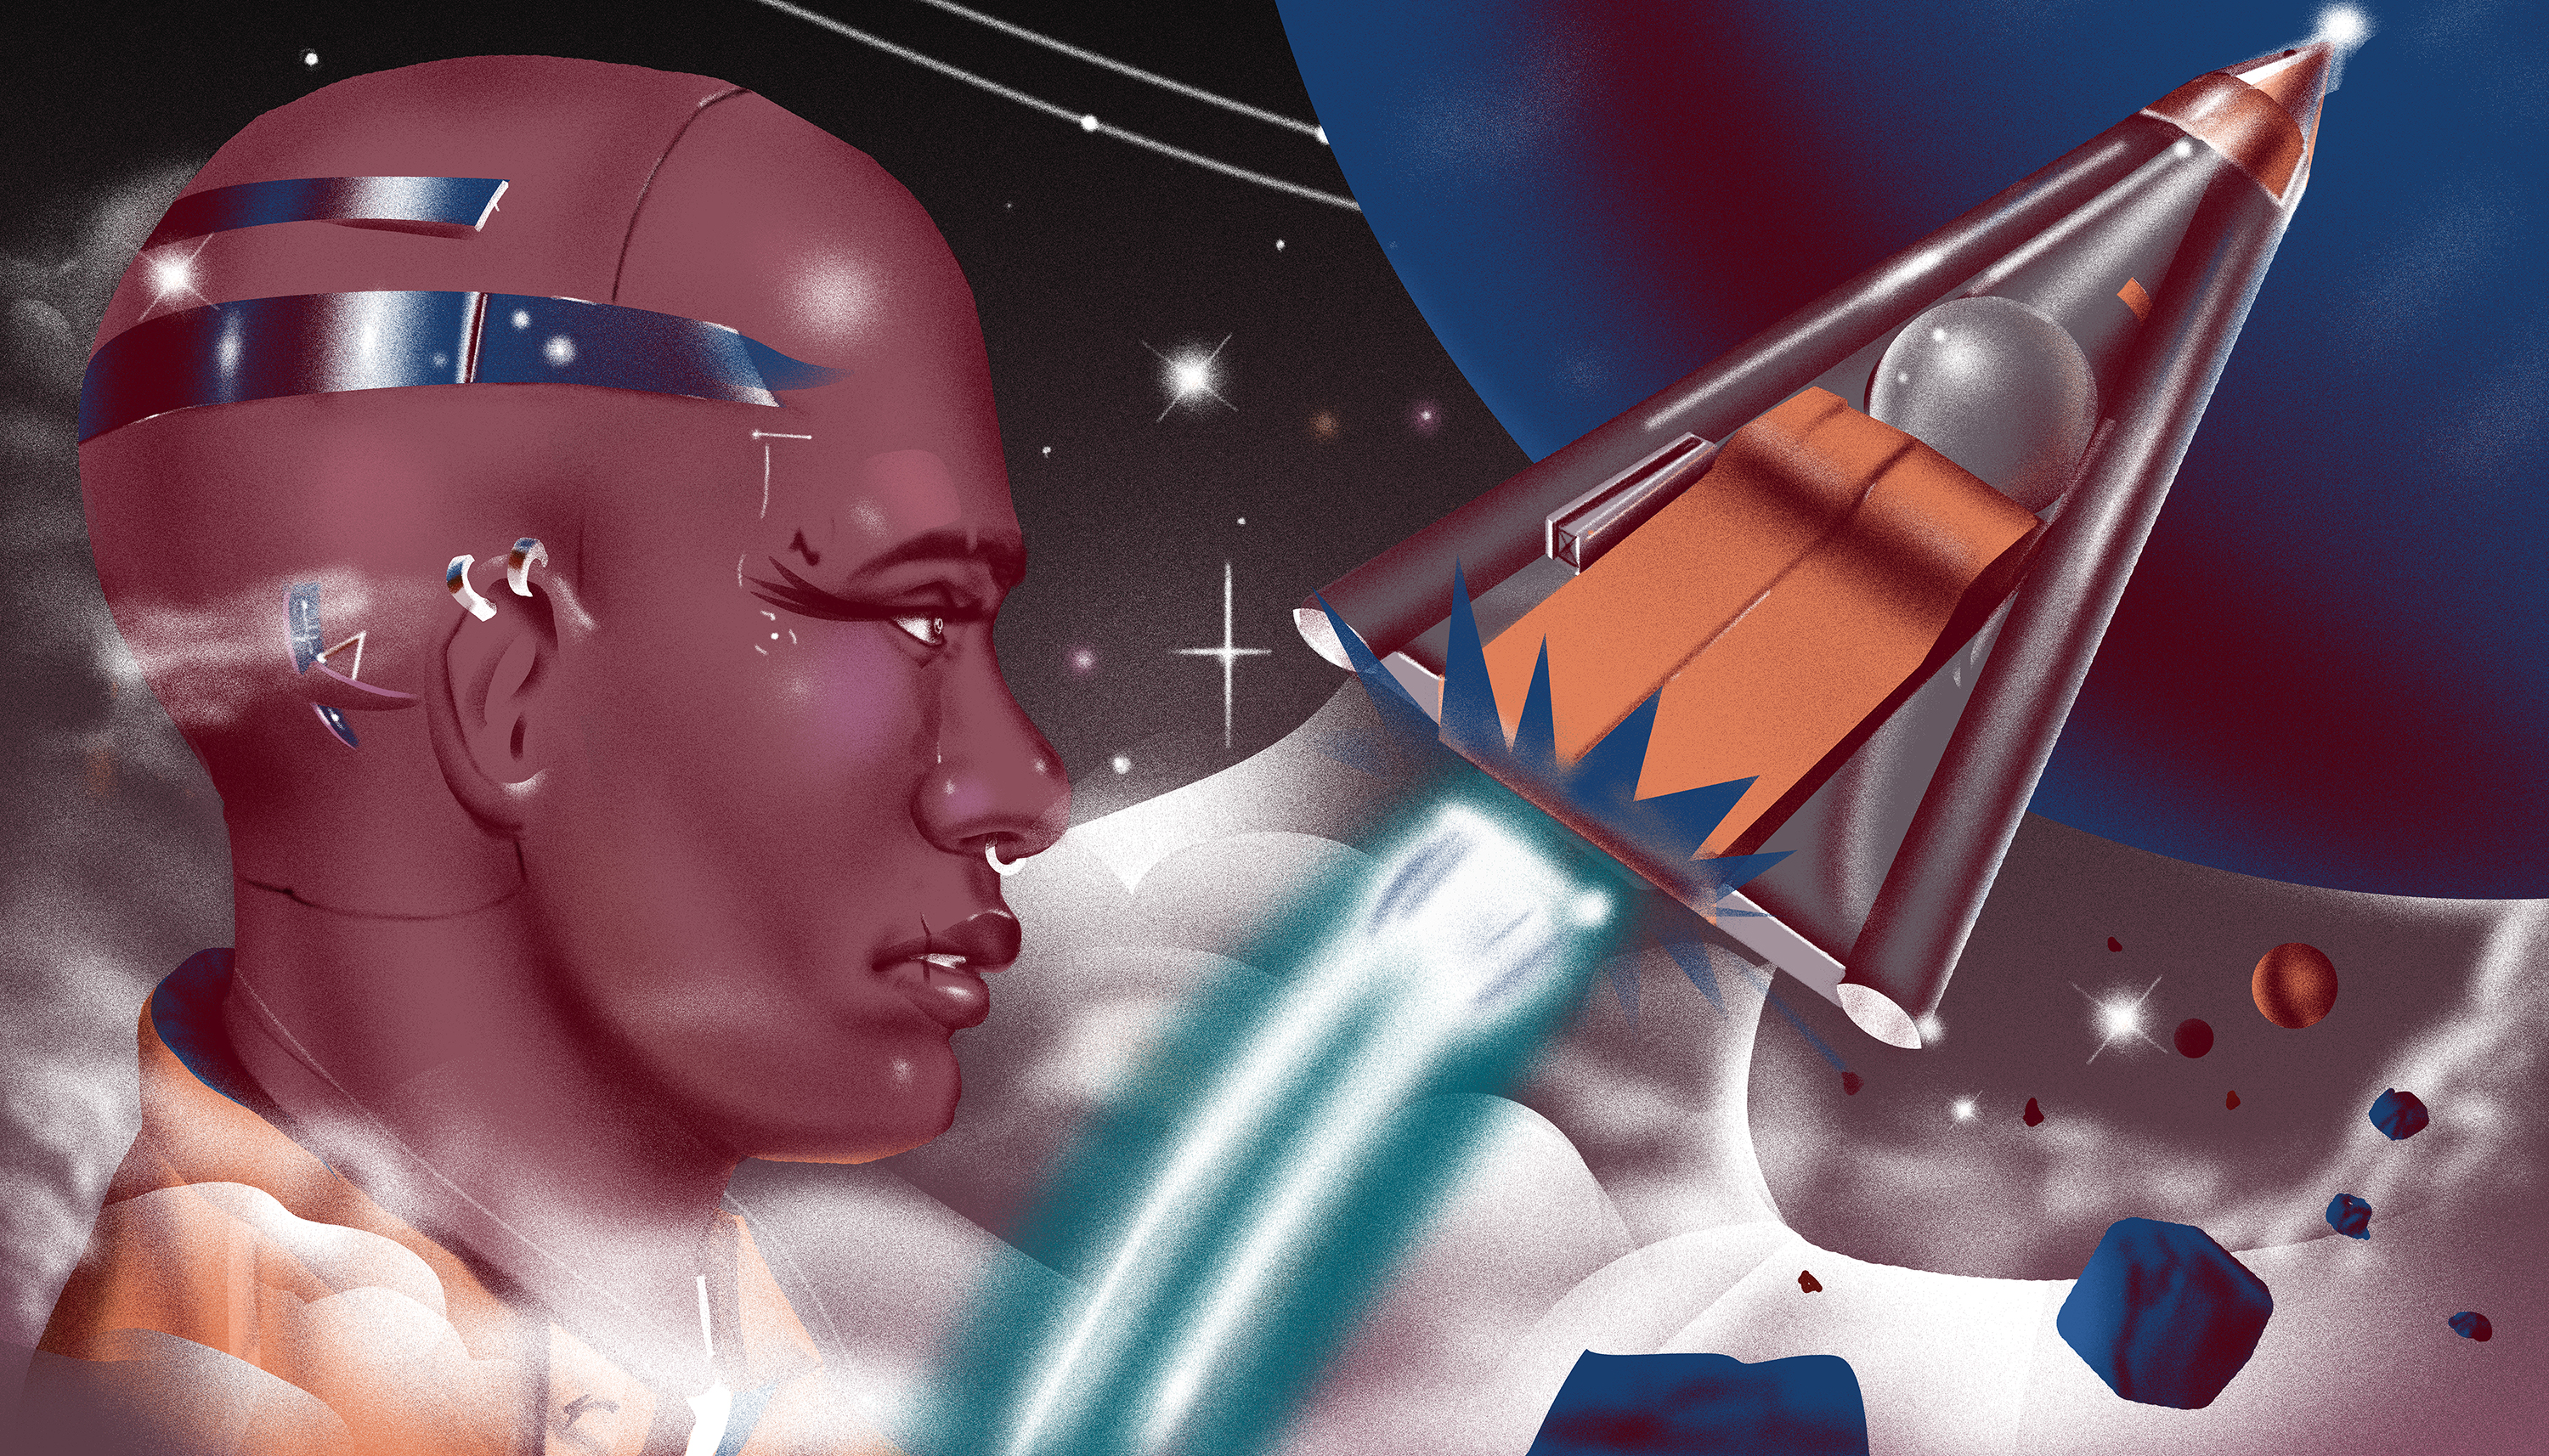 Illustration featuring bald man with metal head band, a rocket ship, and a planet in the background